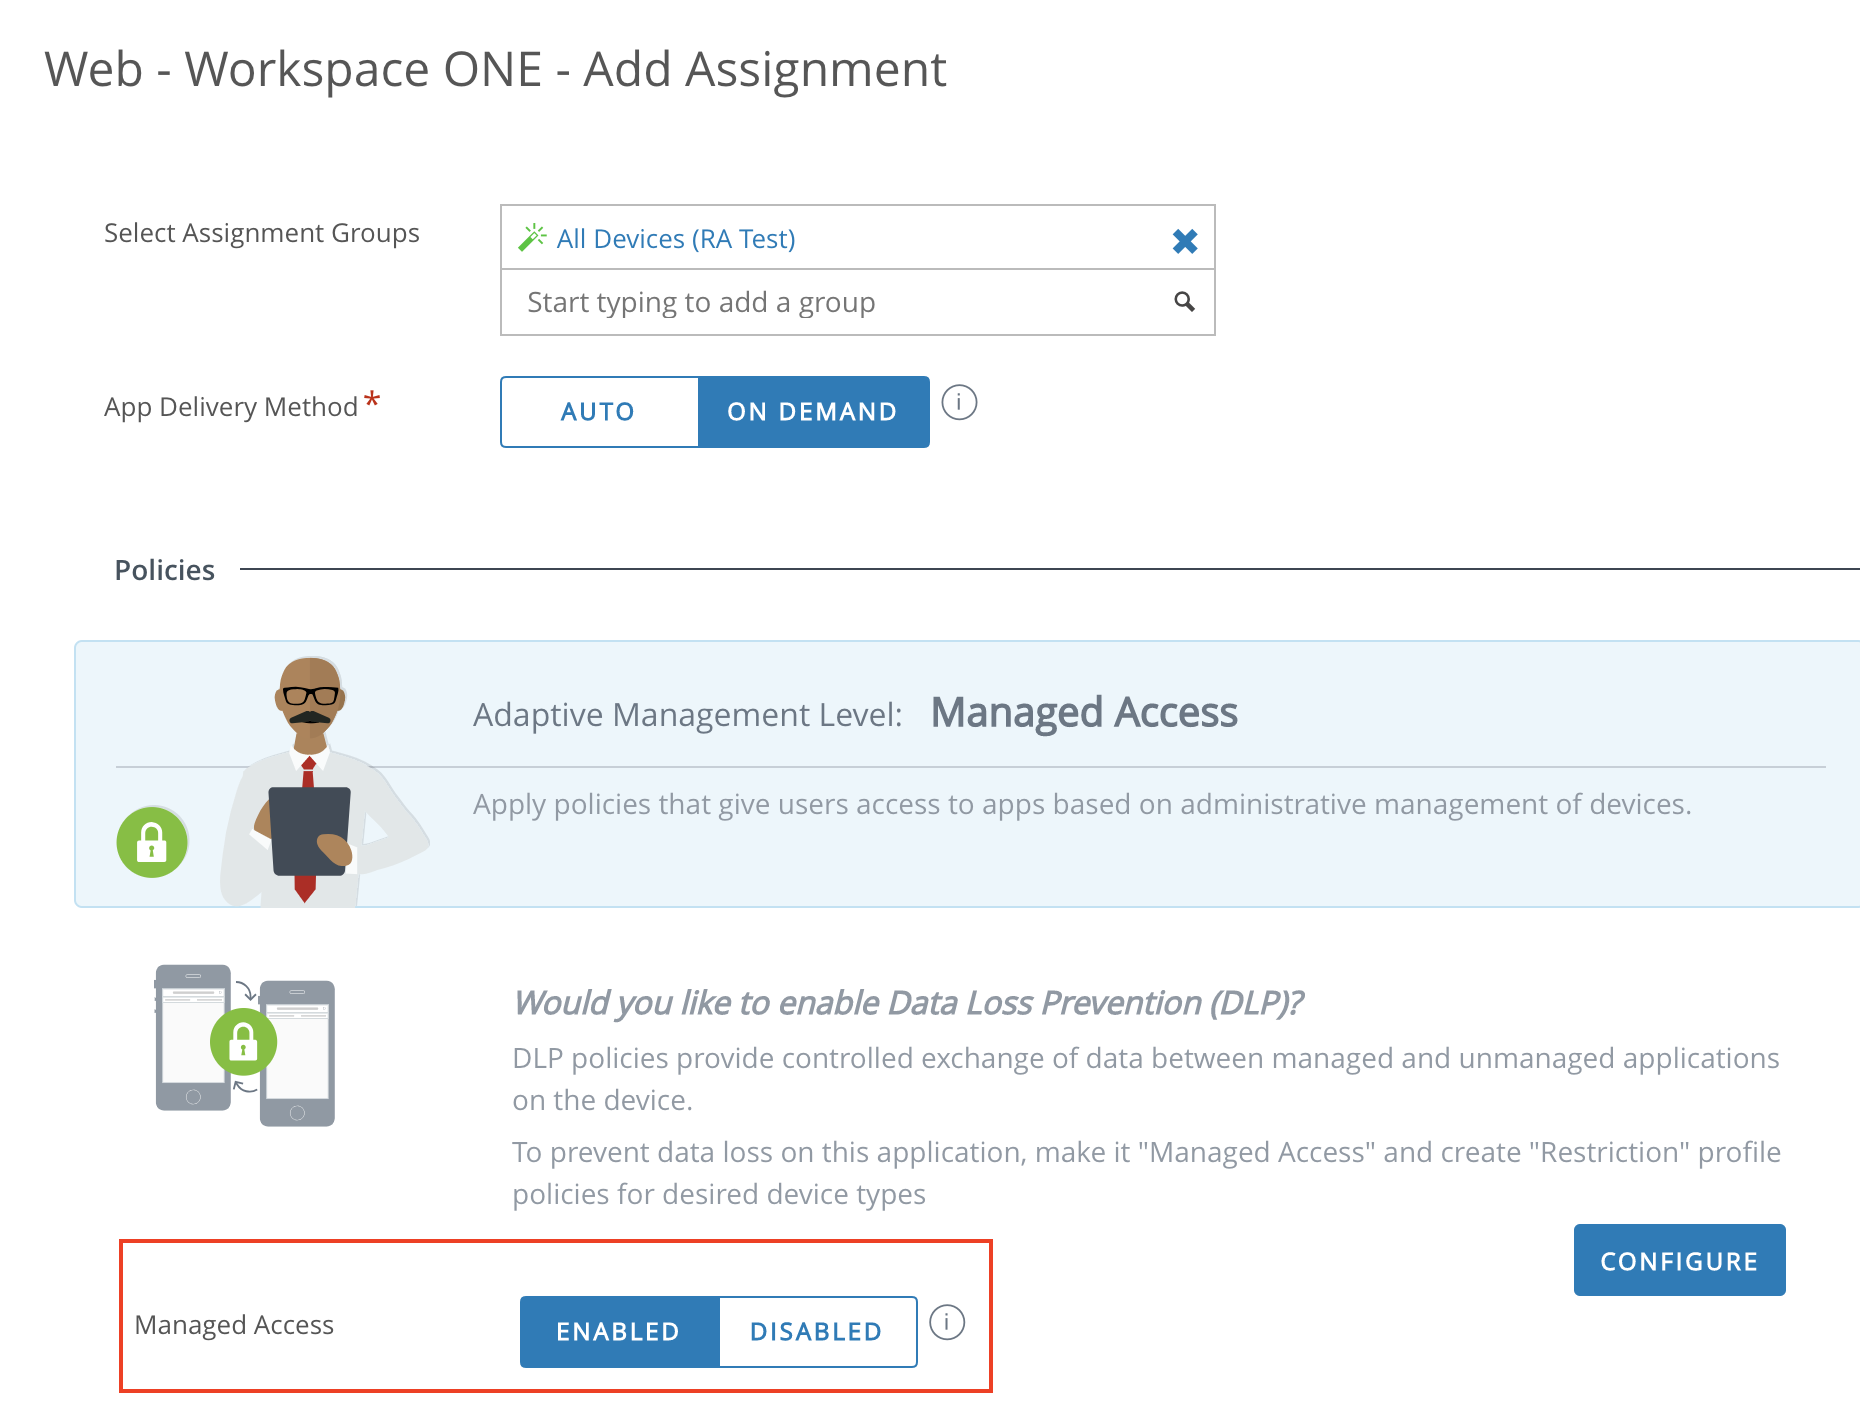 Workspace ONE Application Deployment for Adaptive Management